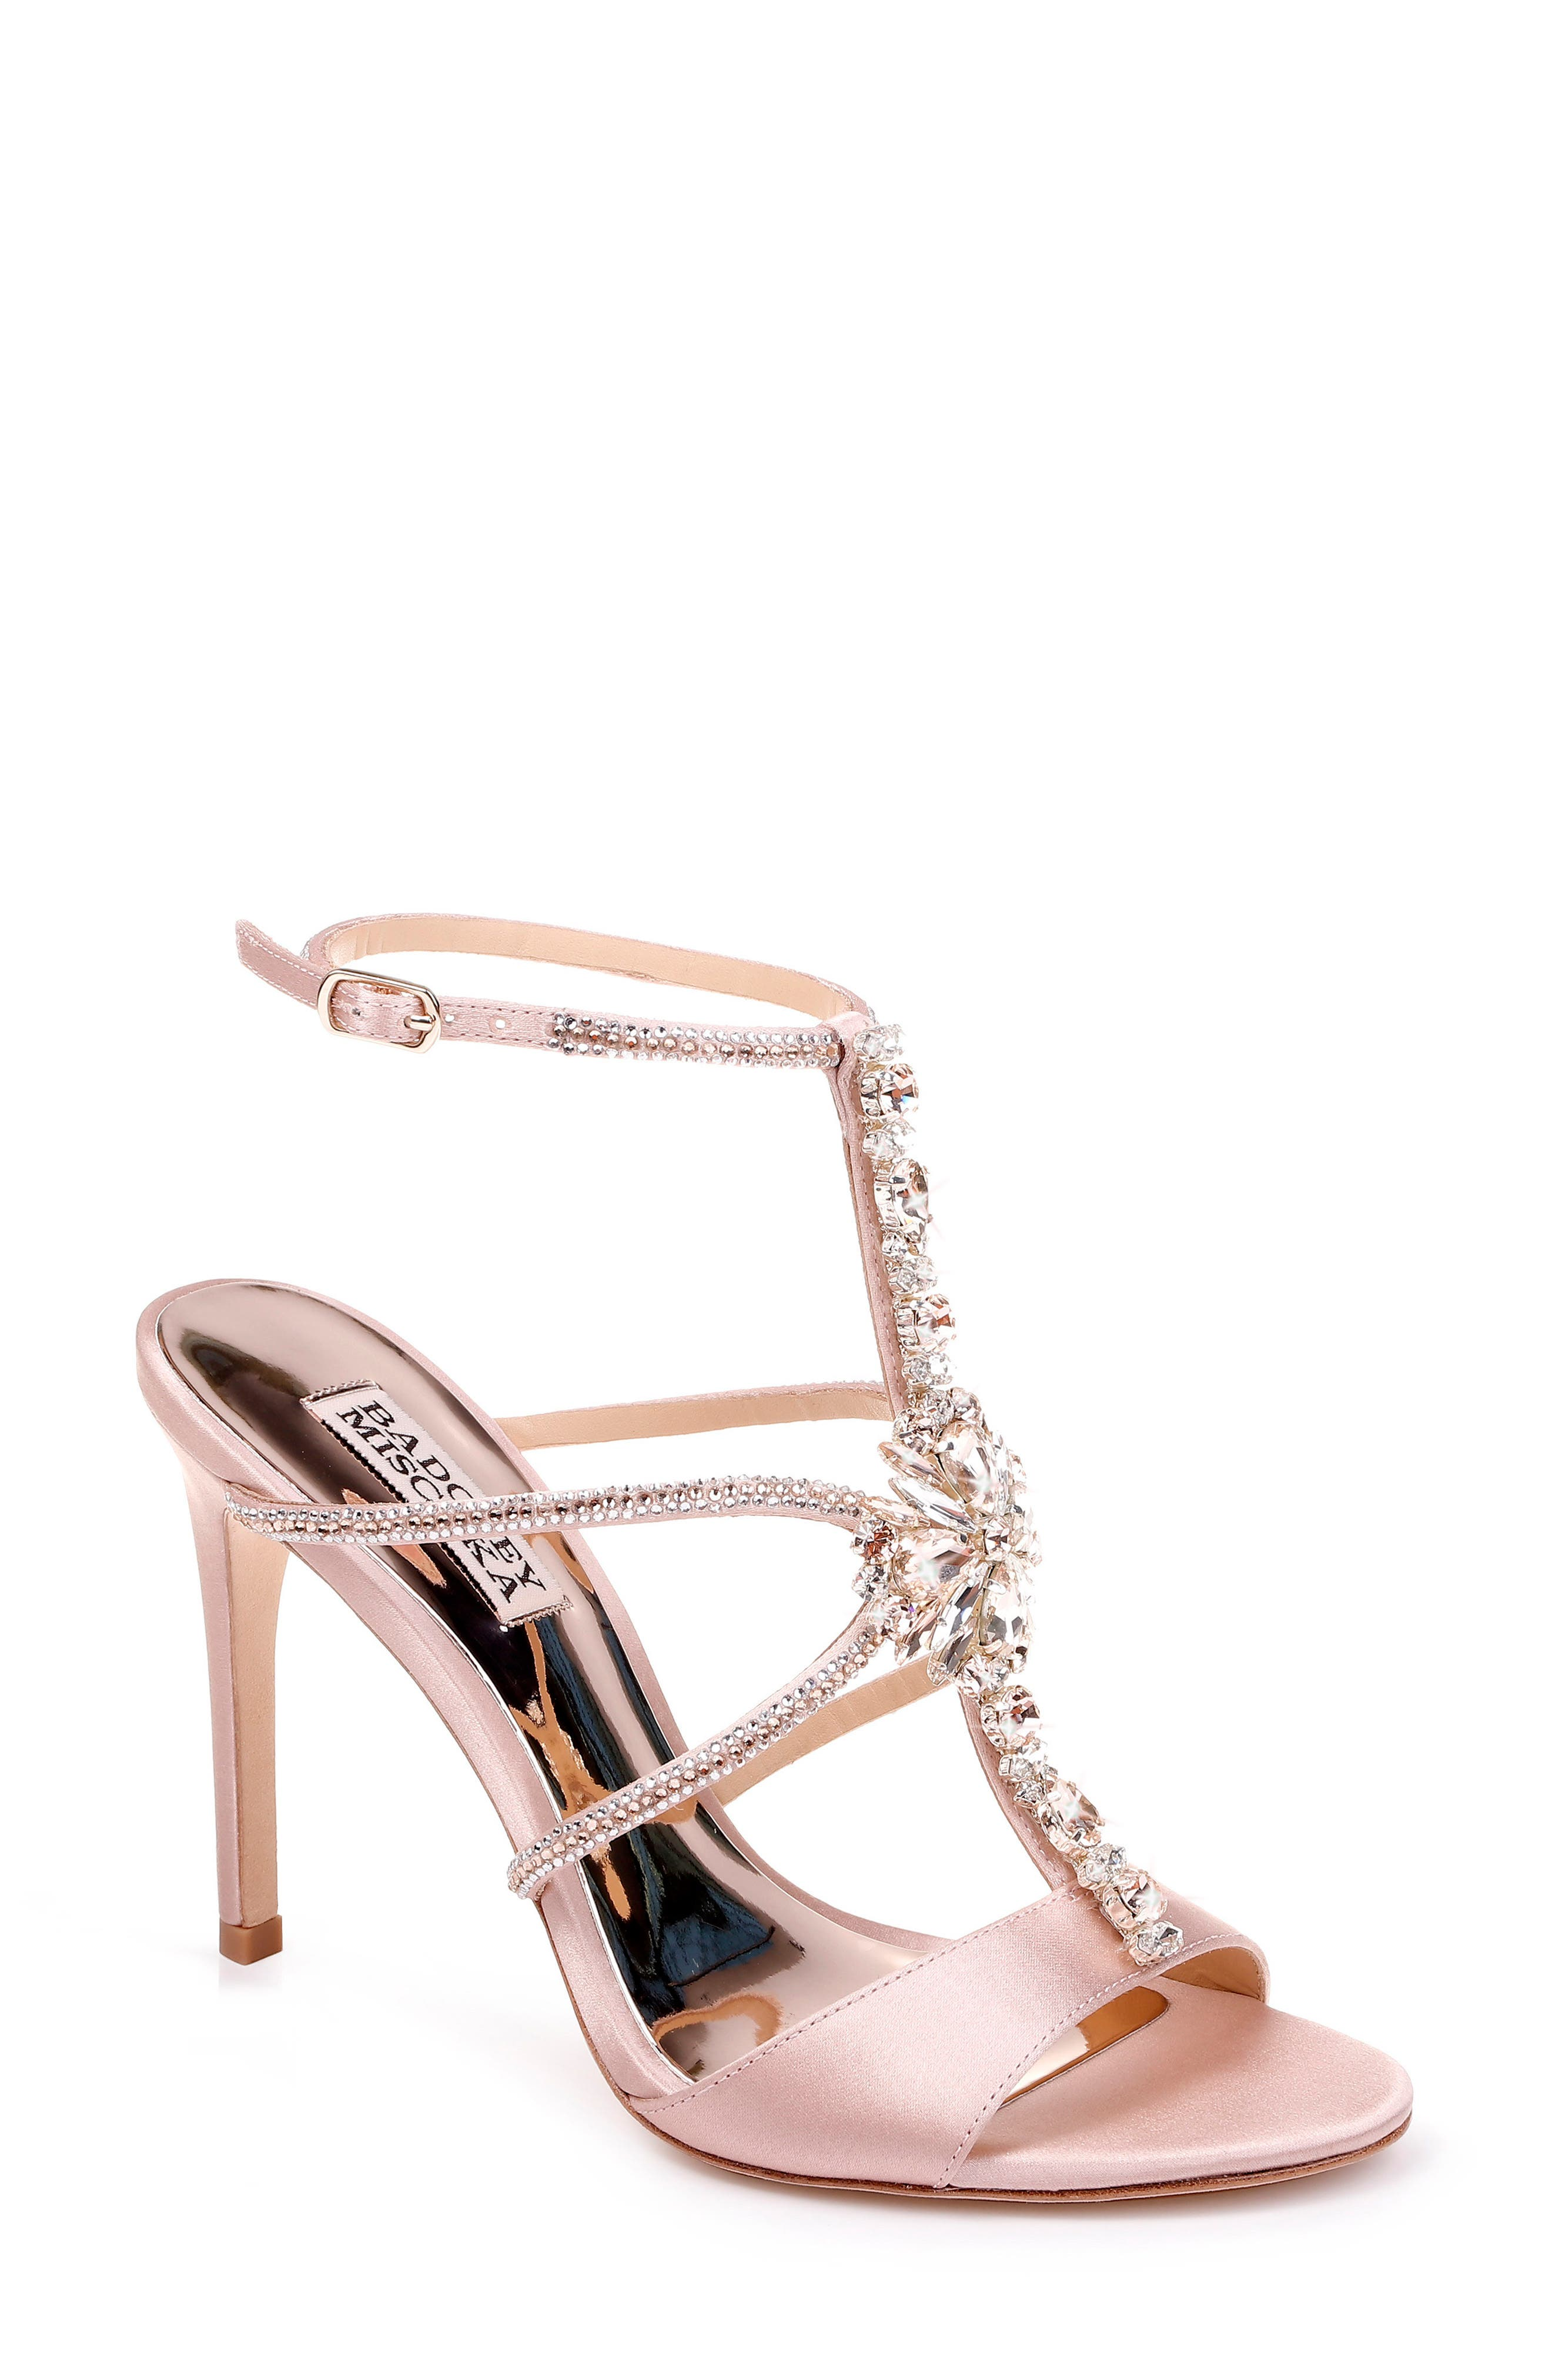 BADGLEY MISCHKA COLLECTION Badgley Mischka Faye Ankle Strap Sandal, Main, color, SOFT BLUSH SATIN